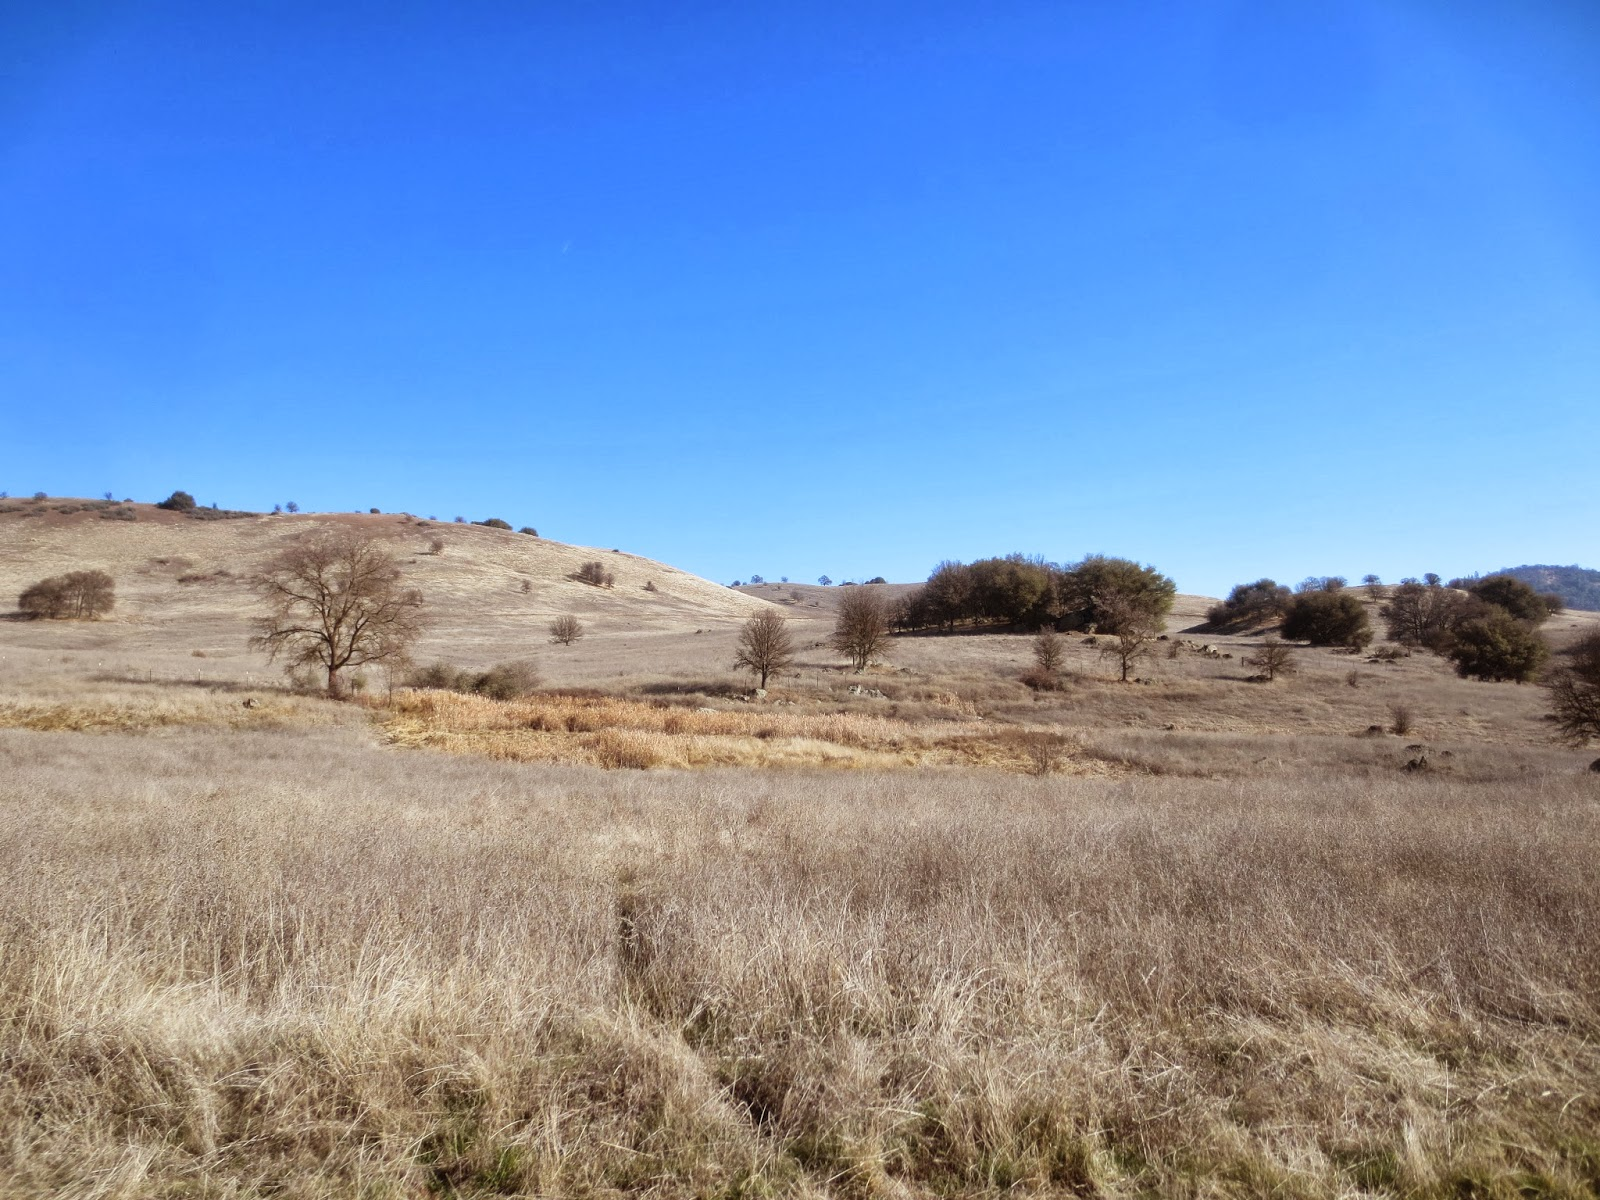 Day hikes: Cronan Ranch Regional Trails Park